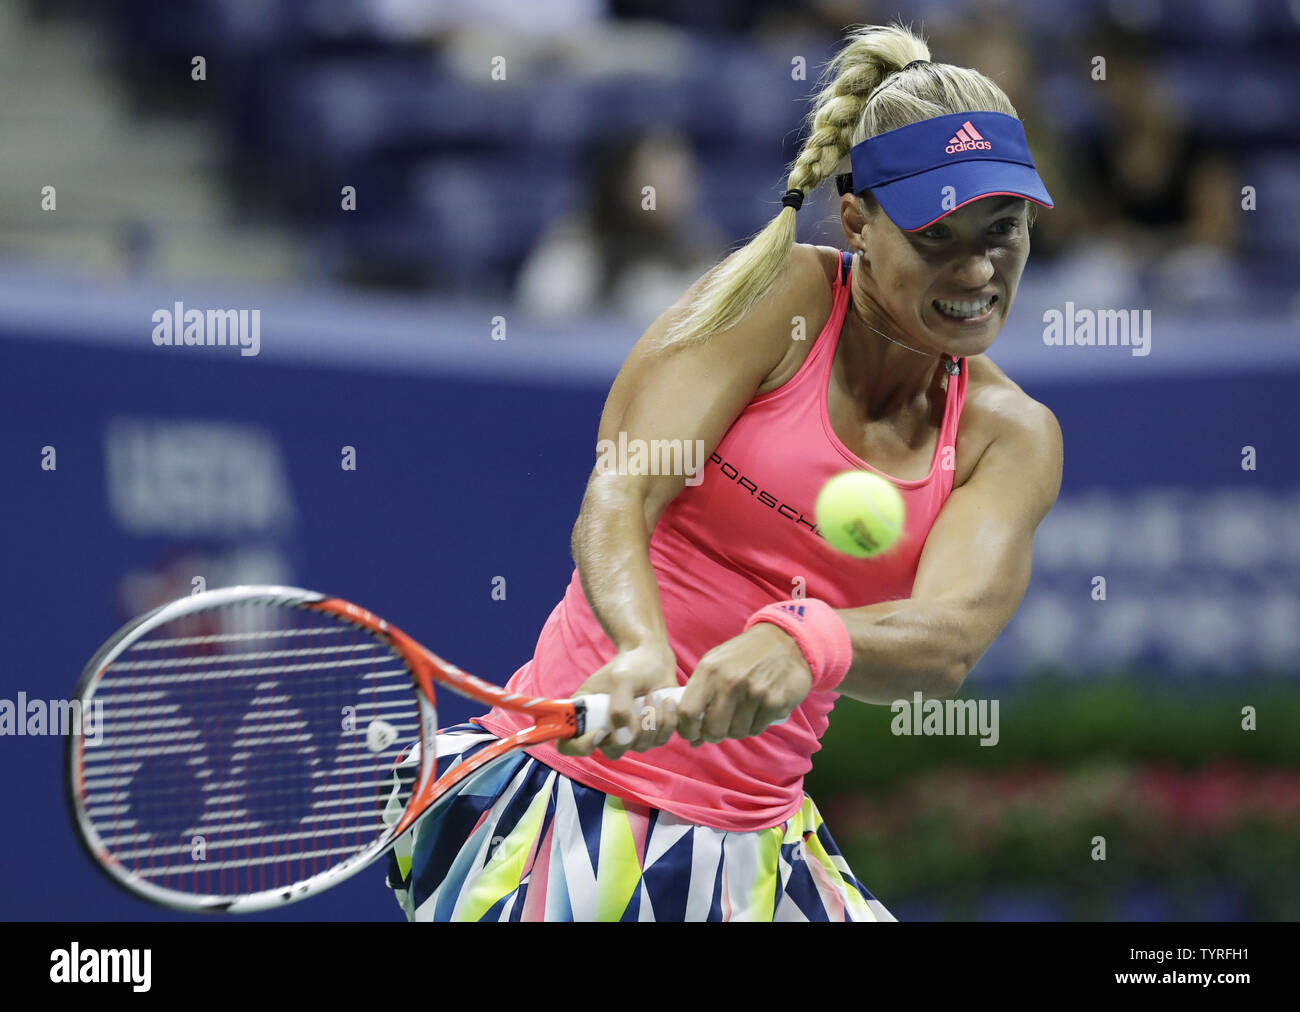 Angelique Kerber of Germany hits a backhand to Catherine Bellis of the United States in Arthur Ashe Stadium at the 2016 US Open Tennis Championships at the USTA Billie Jean King National Tennis Center in New York City on September 2, 2016.  Photo by John Angelillo/UPI - Stock Image